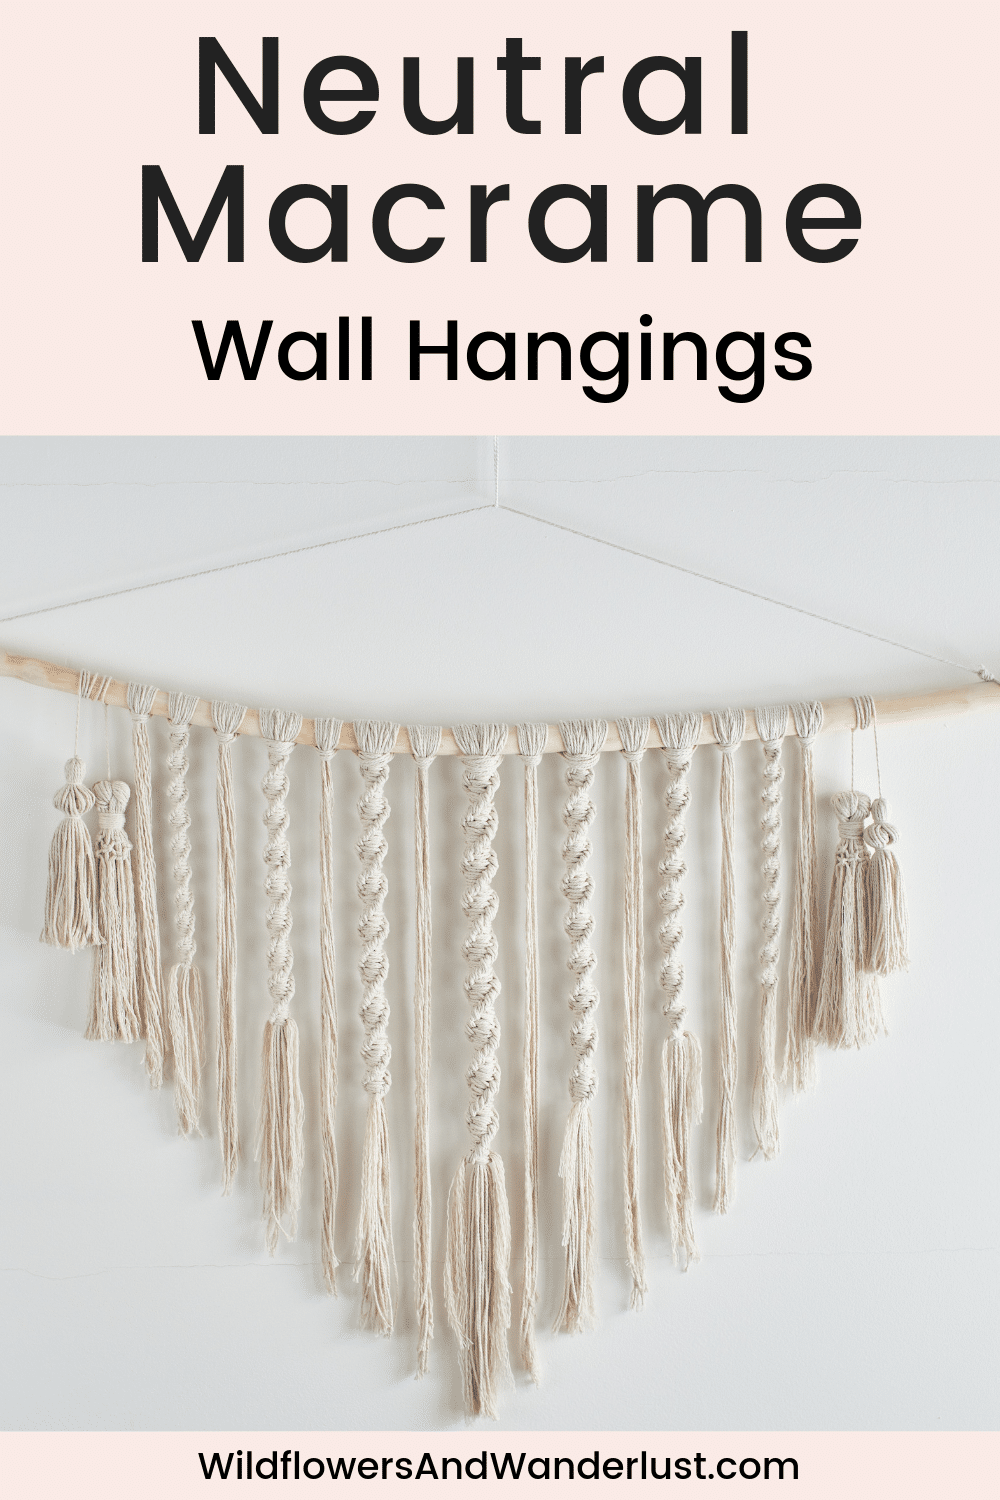 12 Awesome Macrame Wall Hangings Macrame Wall Hanging Yarn Wall Hanging Yarn Wall Art